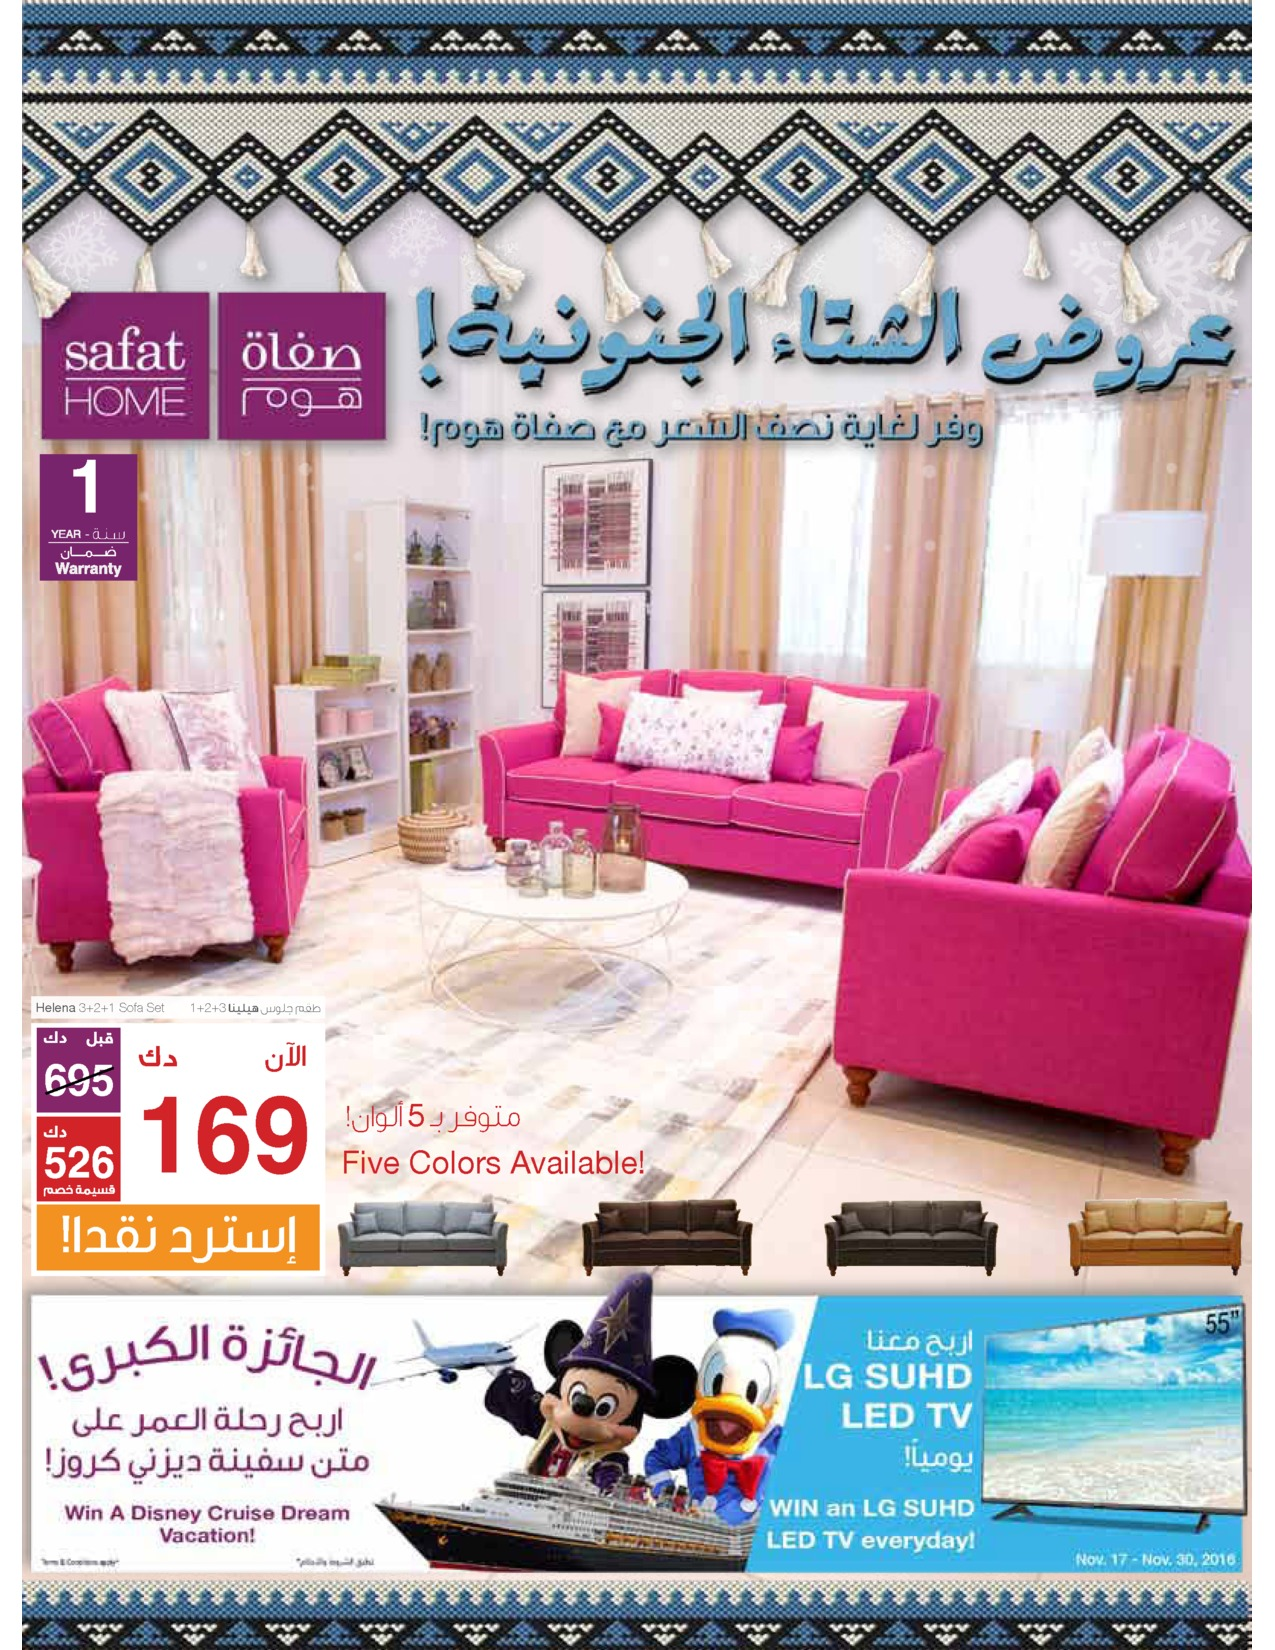 Kuwait Local Crazy Winter Offers Safat Home